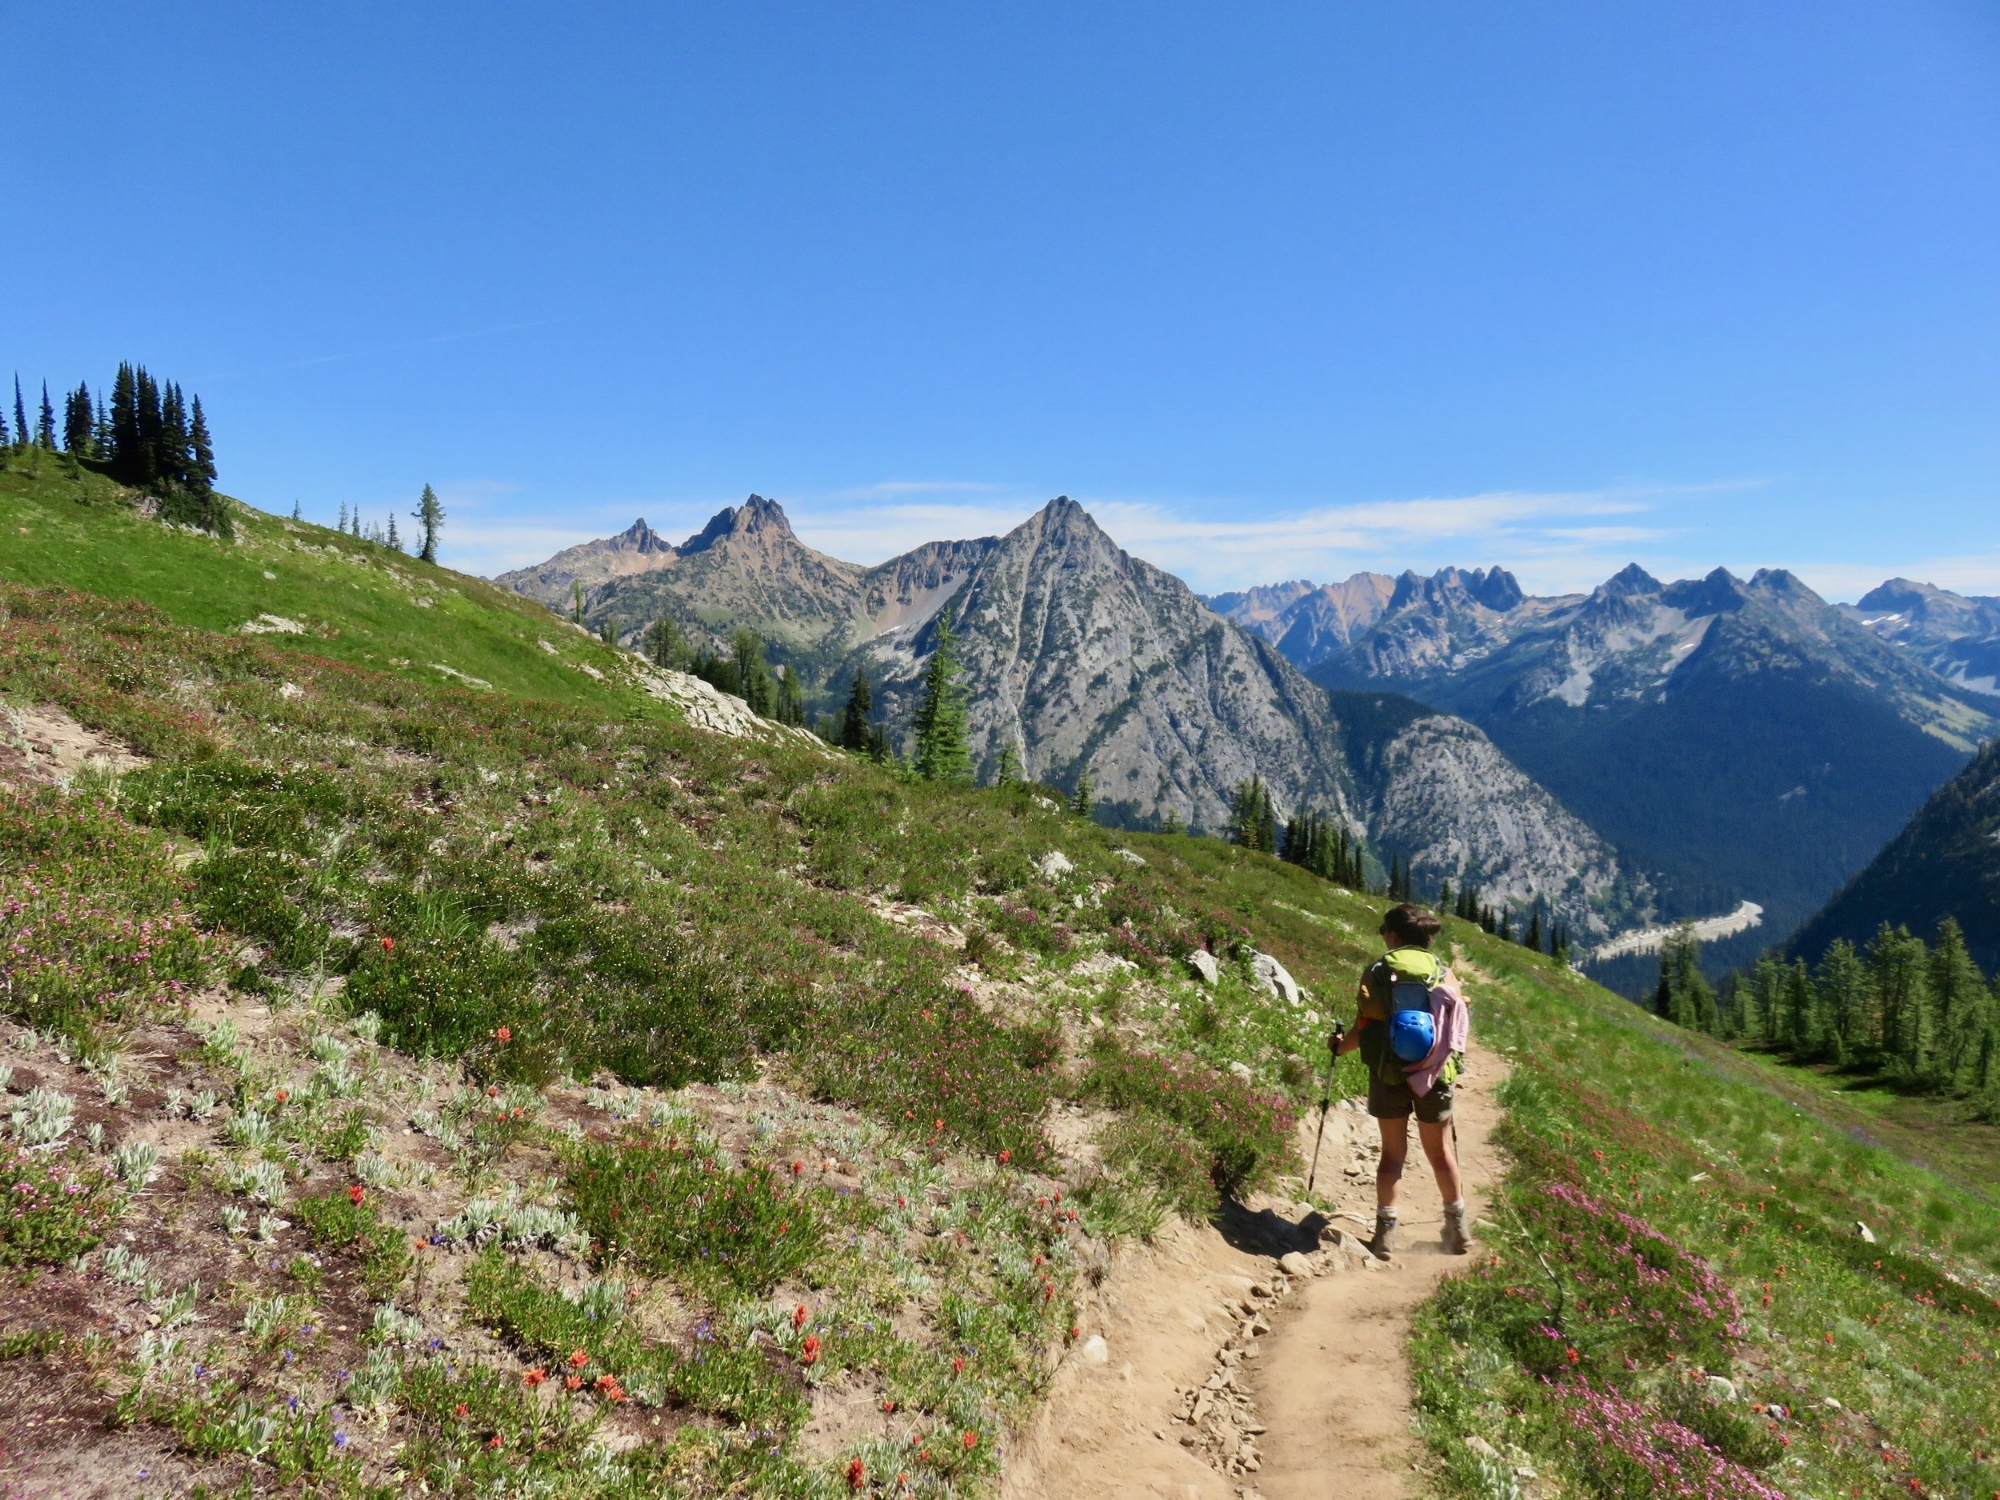 An outdoor dirt trail in a field of wildflowers with a women wearing a backpack and blue sky